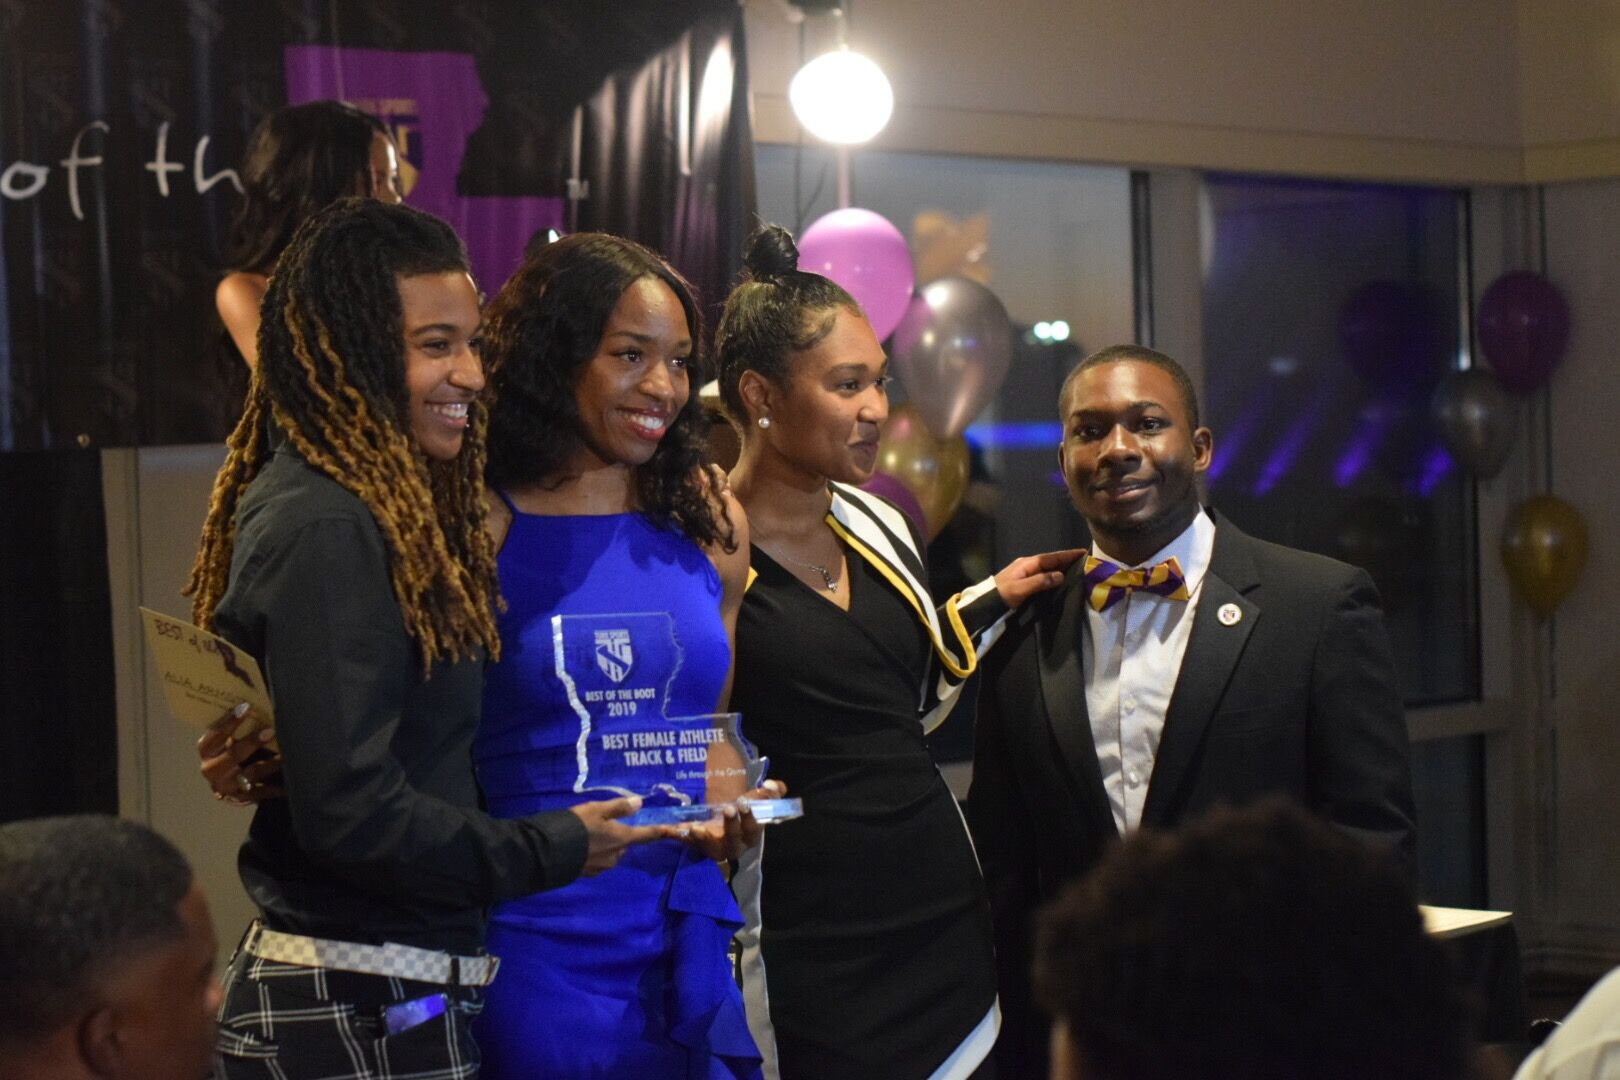 Alia Armstrong- Best Female Athlete; Track & Field receives award from Pro Track Star Aliah Hobbs, presenter Amaya Cannon & Lance Jones